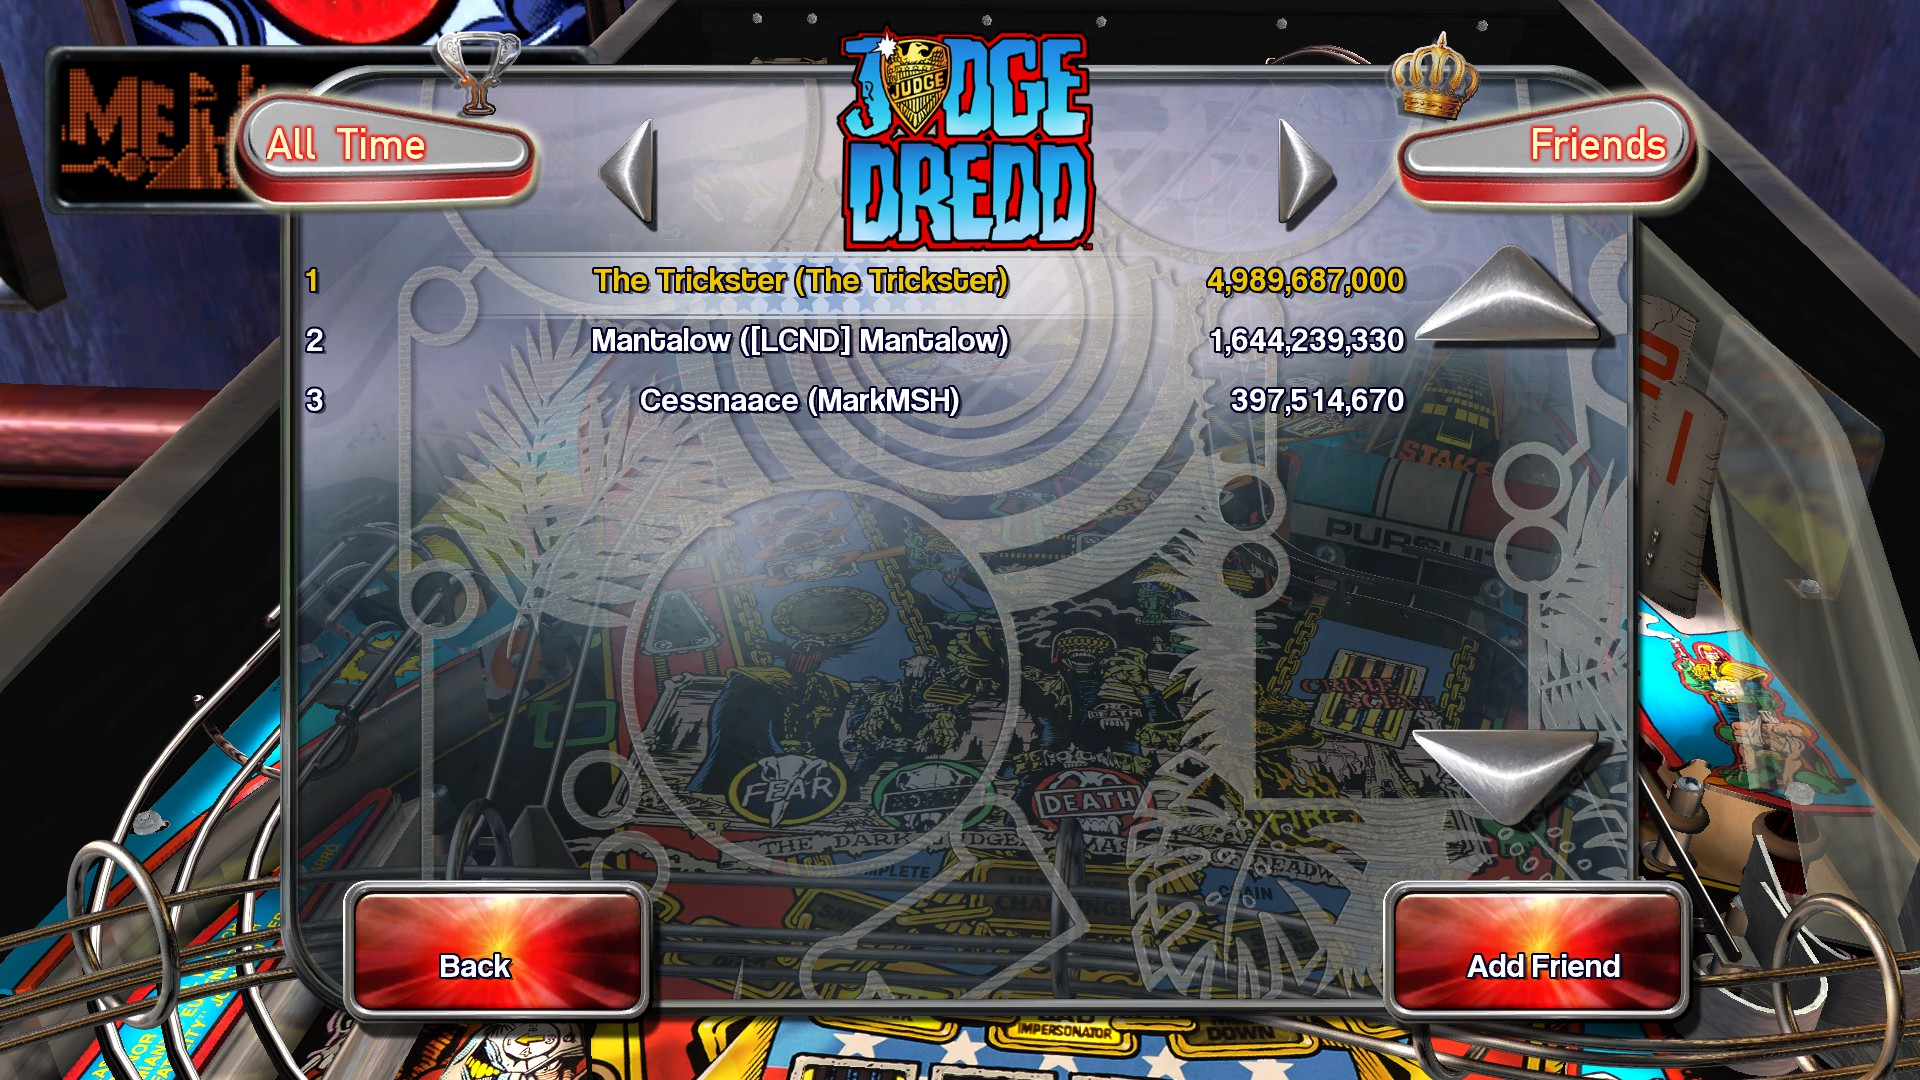 Pinball Arcade: Judge Dredd™ 4,989,687,000 points